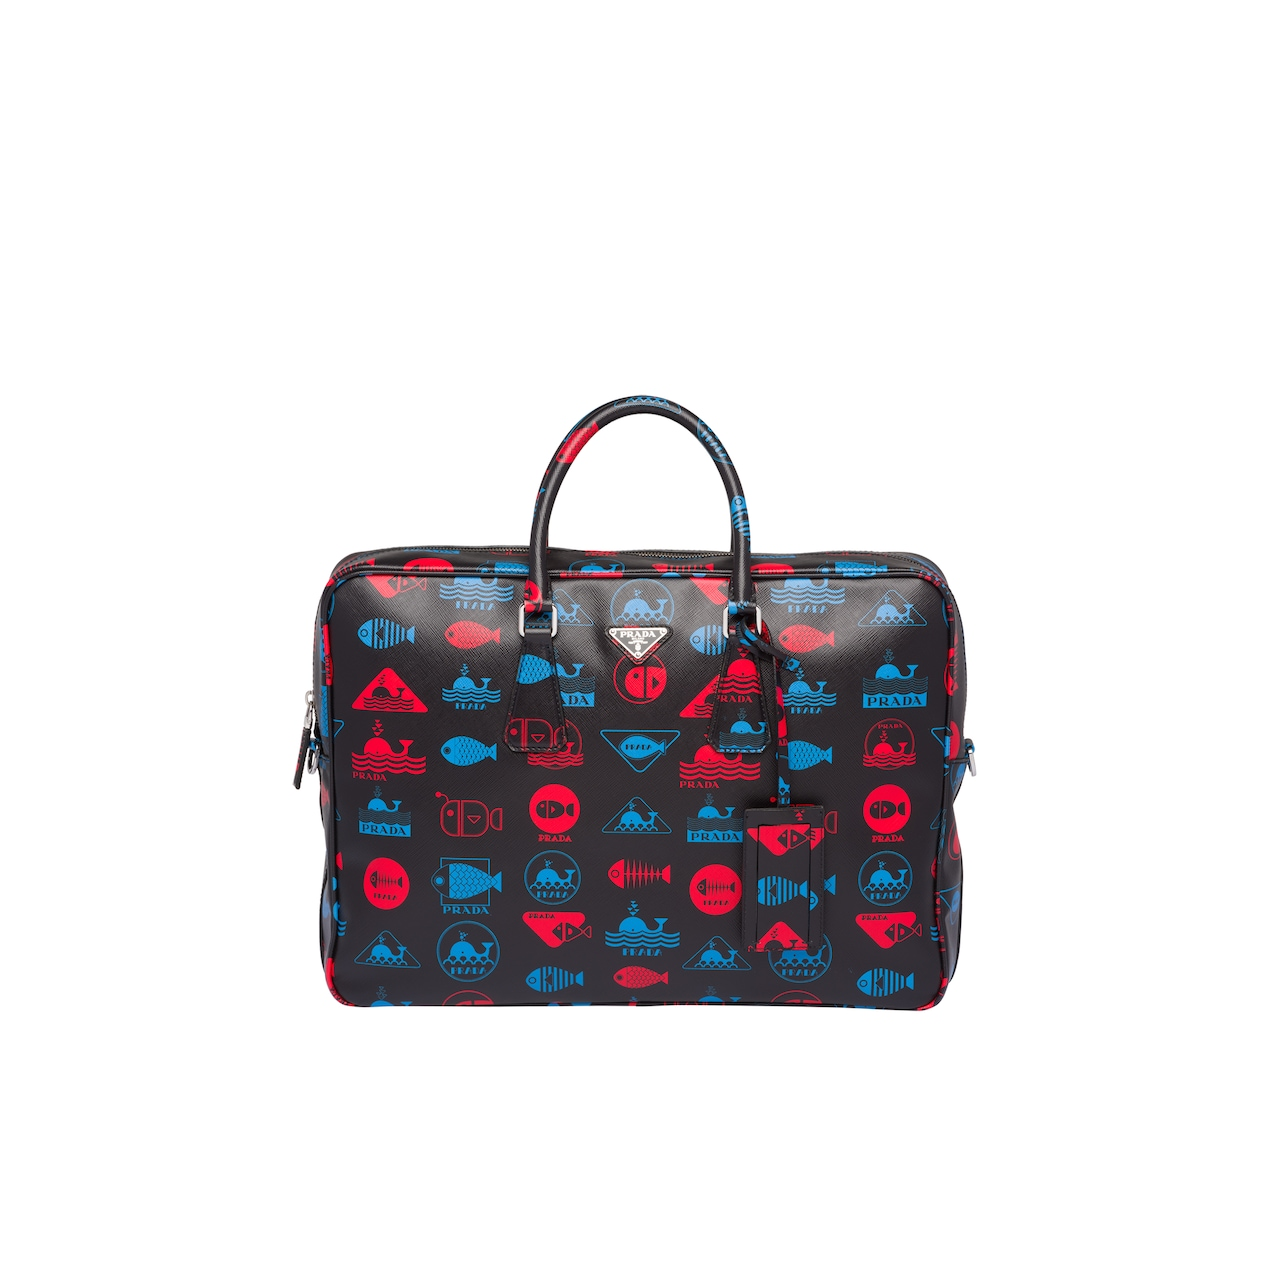 Printed Saffiano leather briefcase